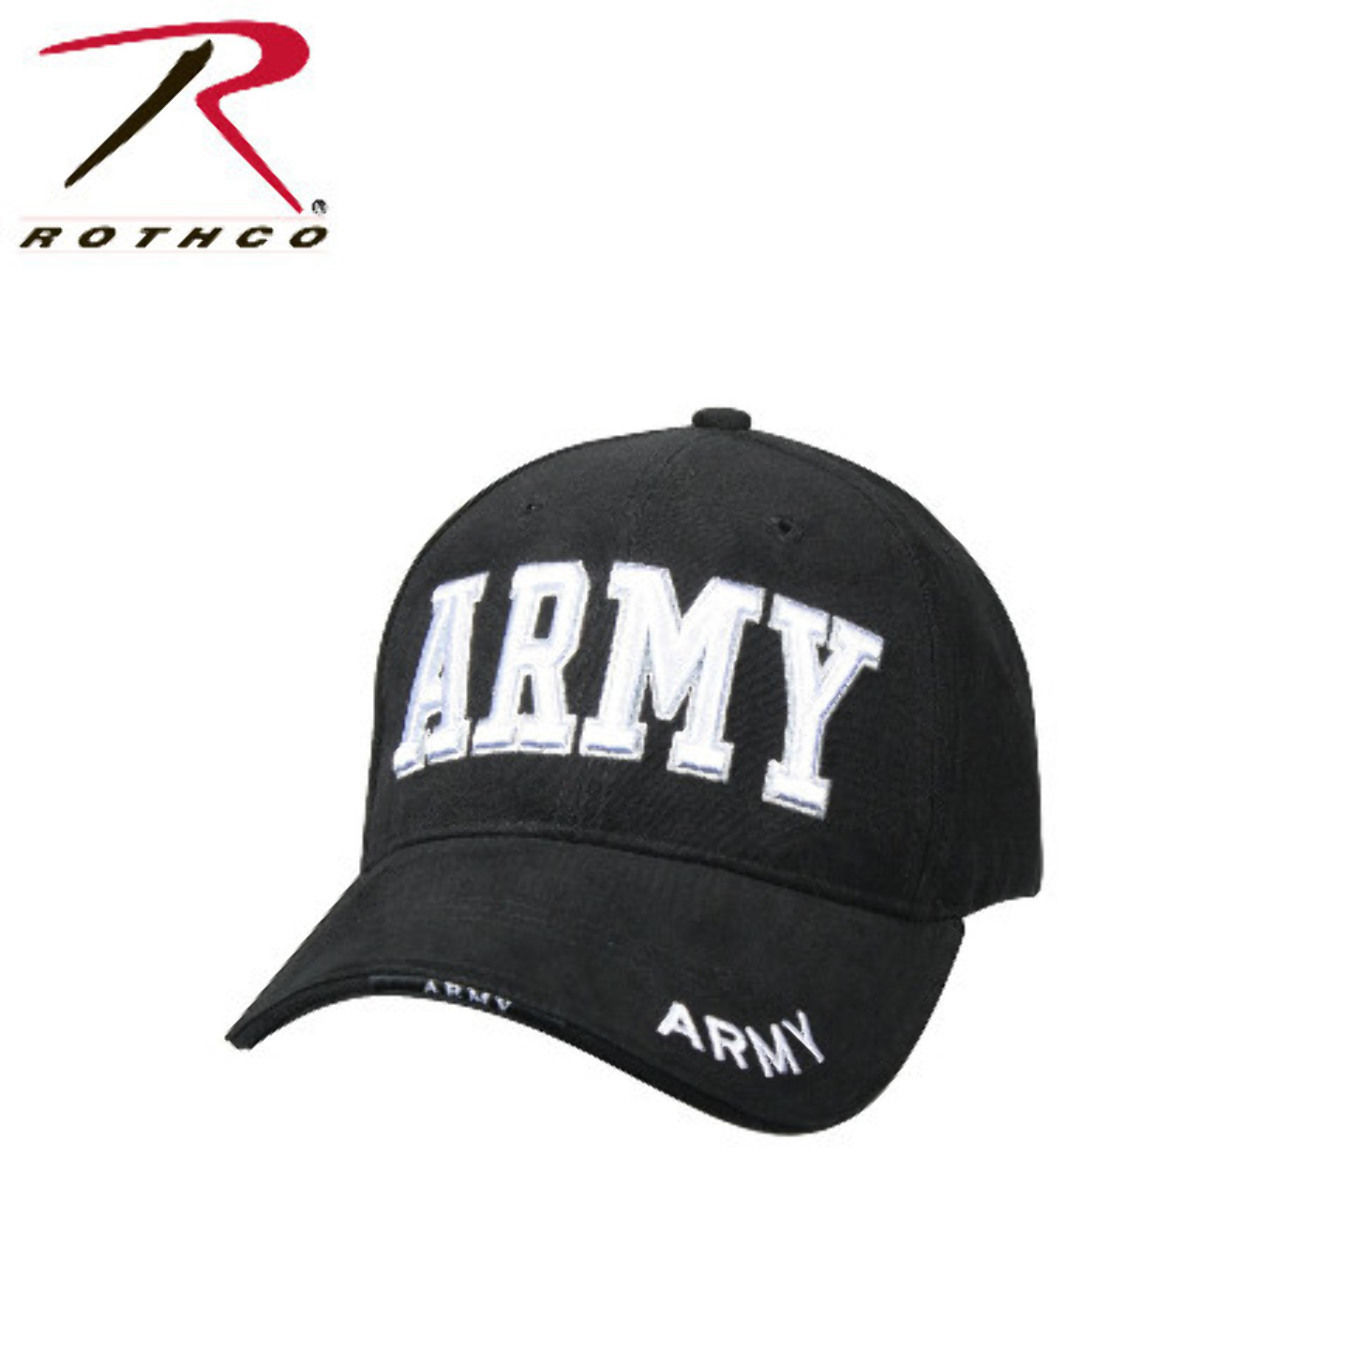 USAR US Army Military Black White Veteran Baseball Low Profile Hat Cap for sale  USA